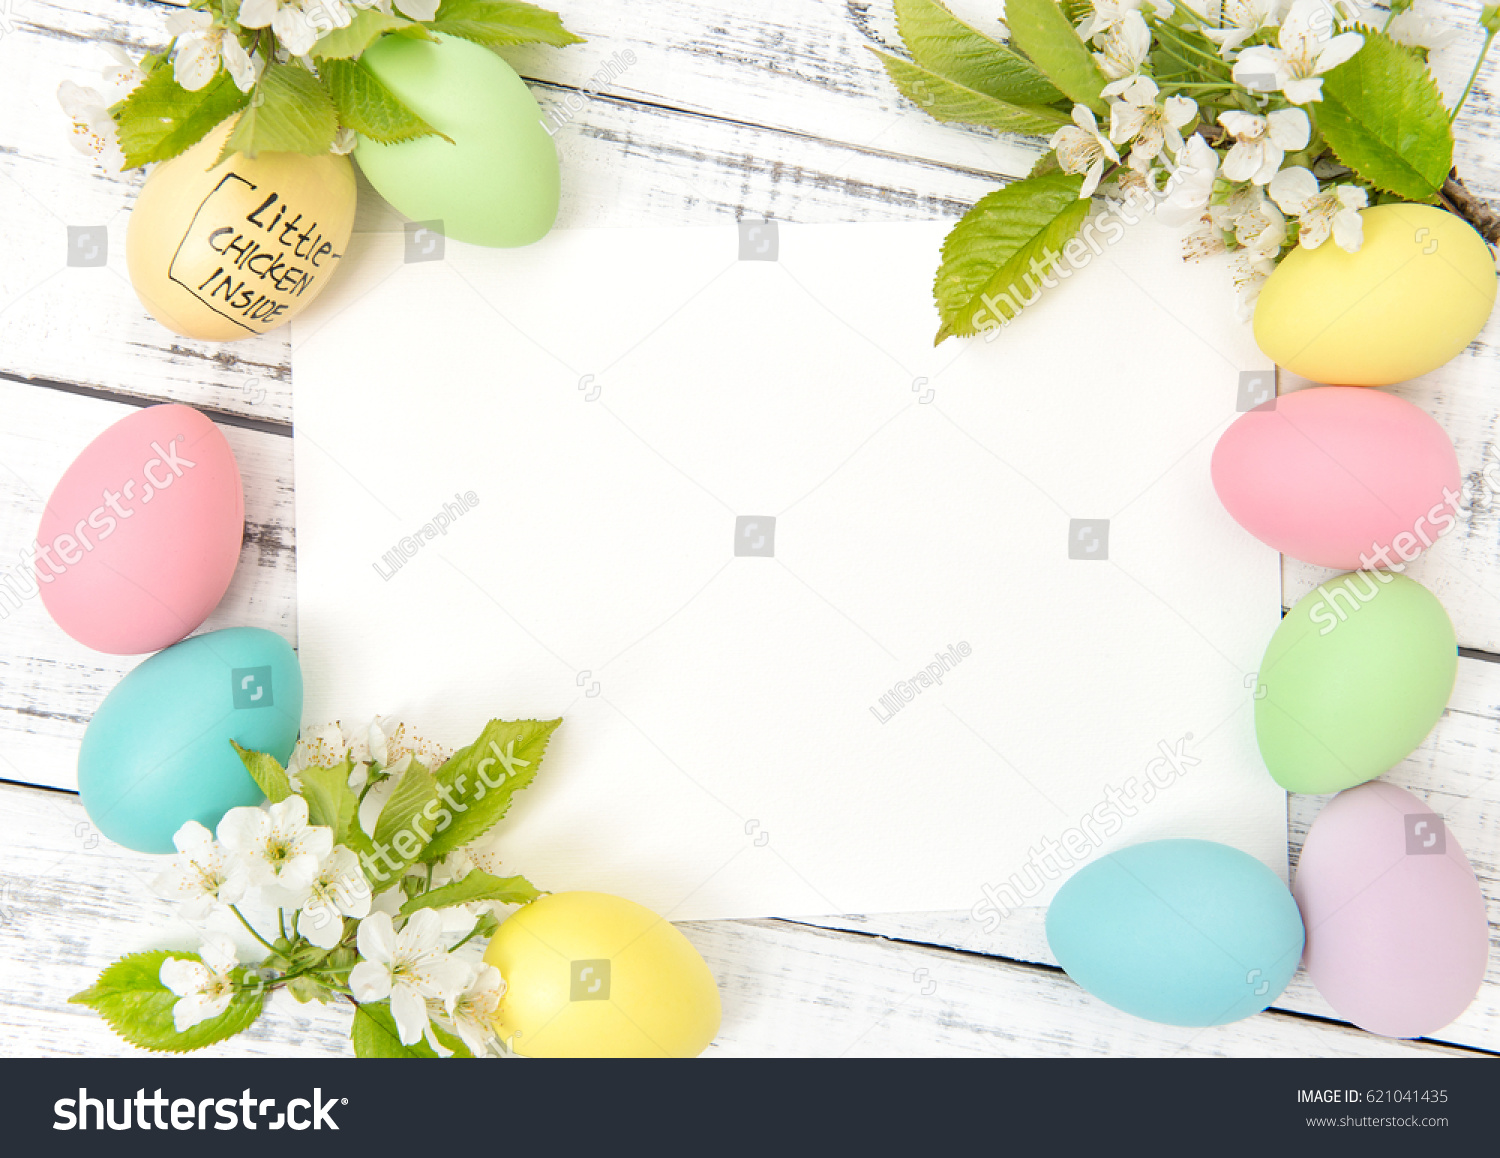 Easter greetings card eggs decoration spring stock photo 621041435 easter greetings card eggs decoration and spring flowers pastel colored eggs on wooden background kristyandbryce Images